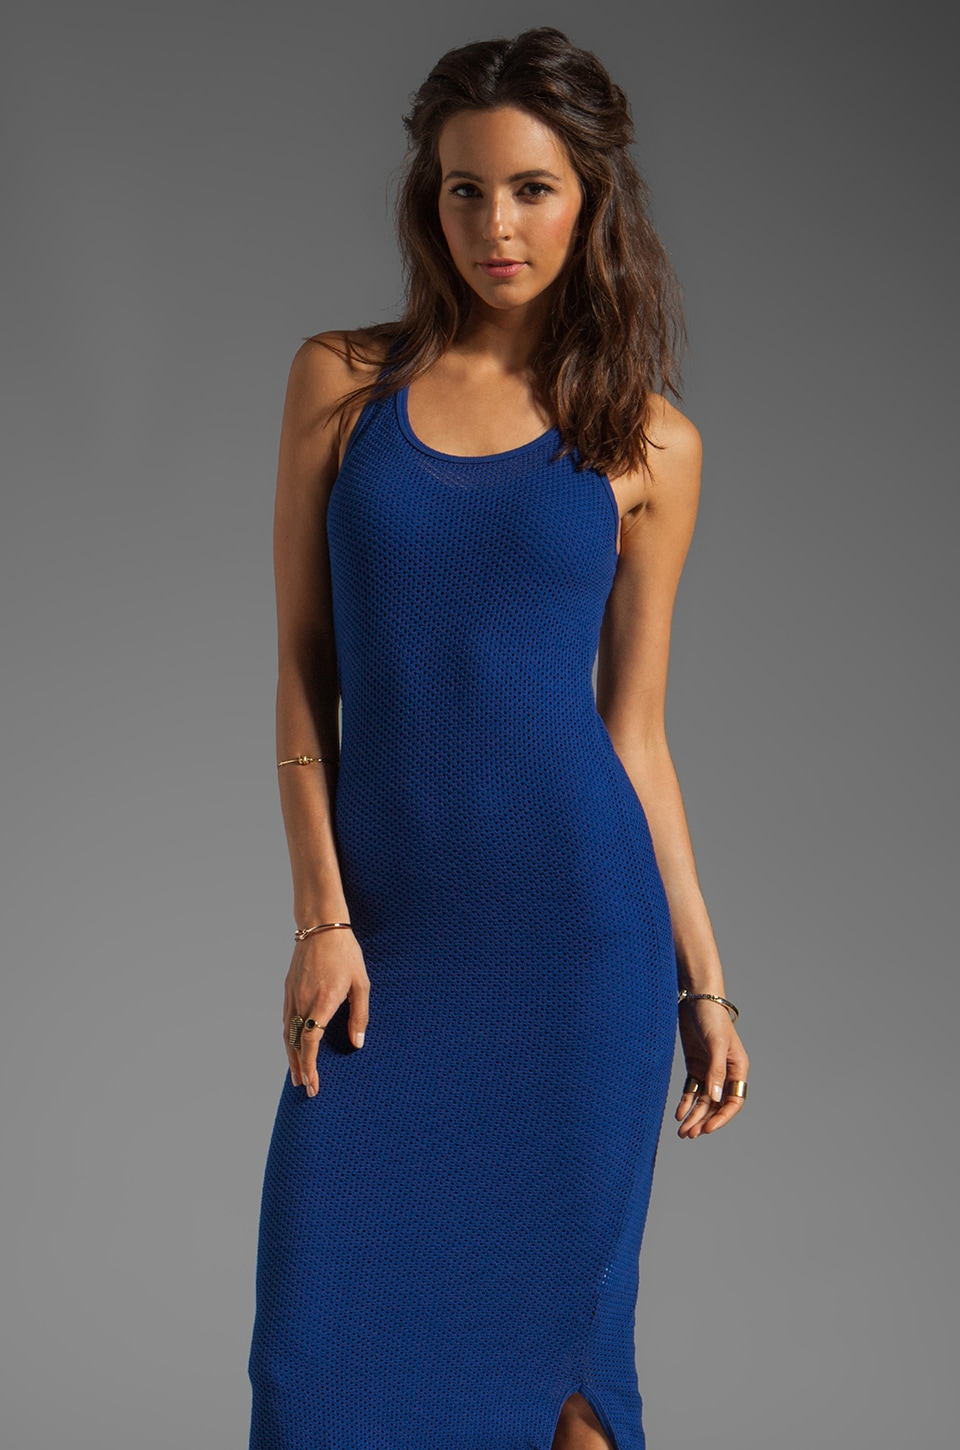 291 Circle Mesh Racerback Maxi Dress in Sapphire